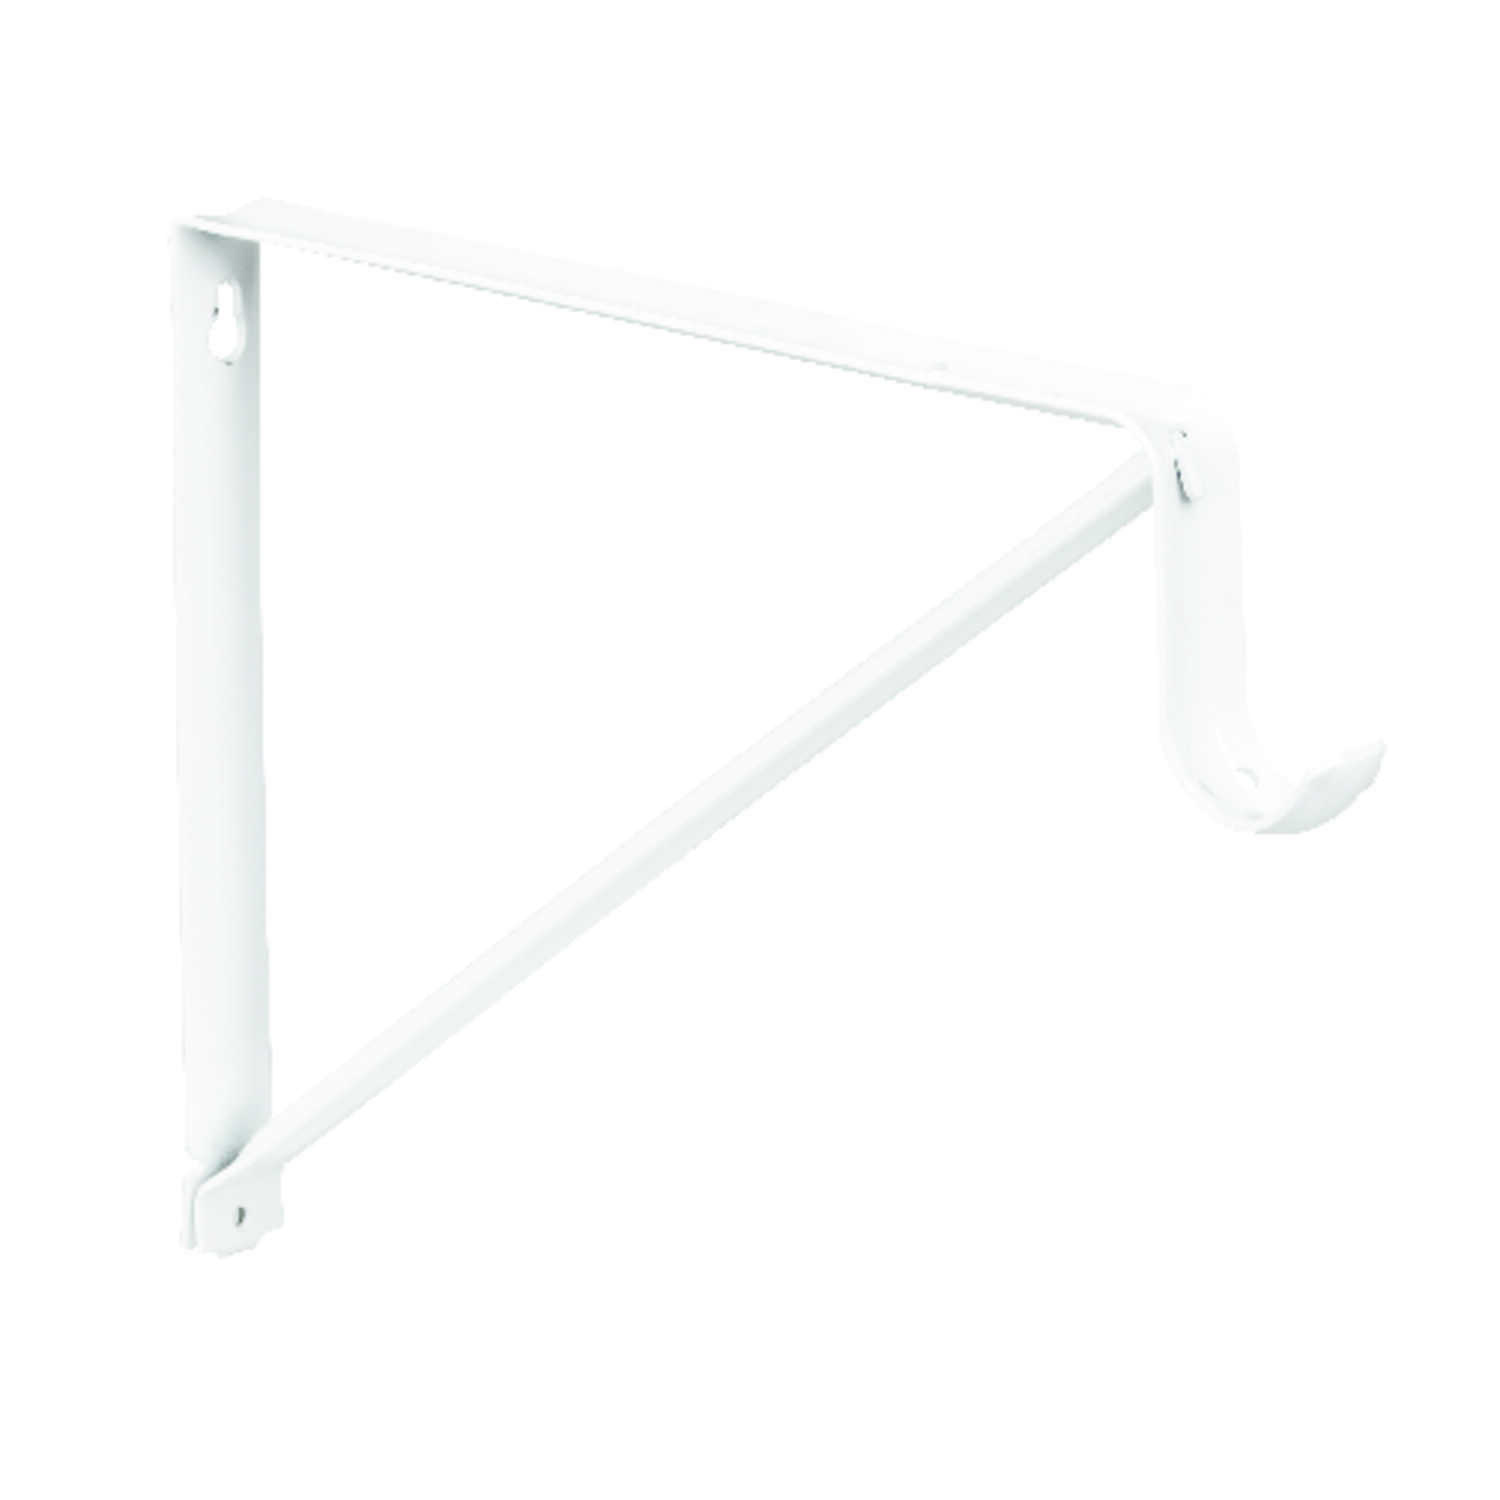 Knape & Vogt  John Sterling  White  White  Steel  12 Ga. Shelf/Rod  9-1/2 in. H x 1 in. W x 13 in. L